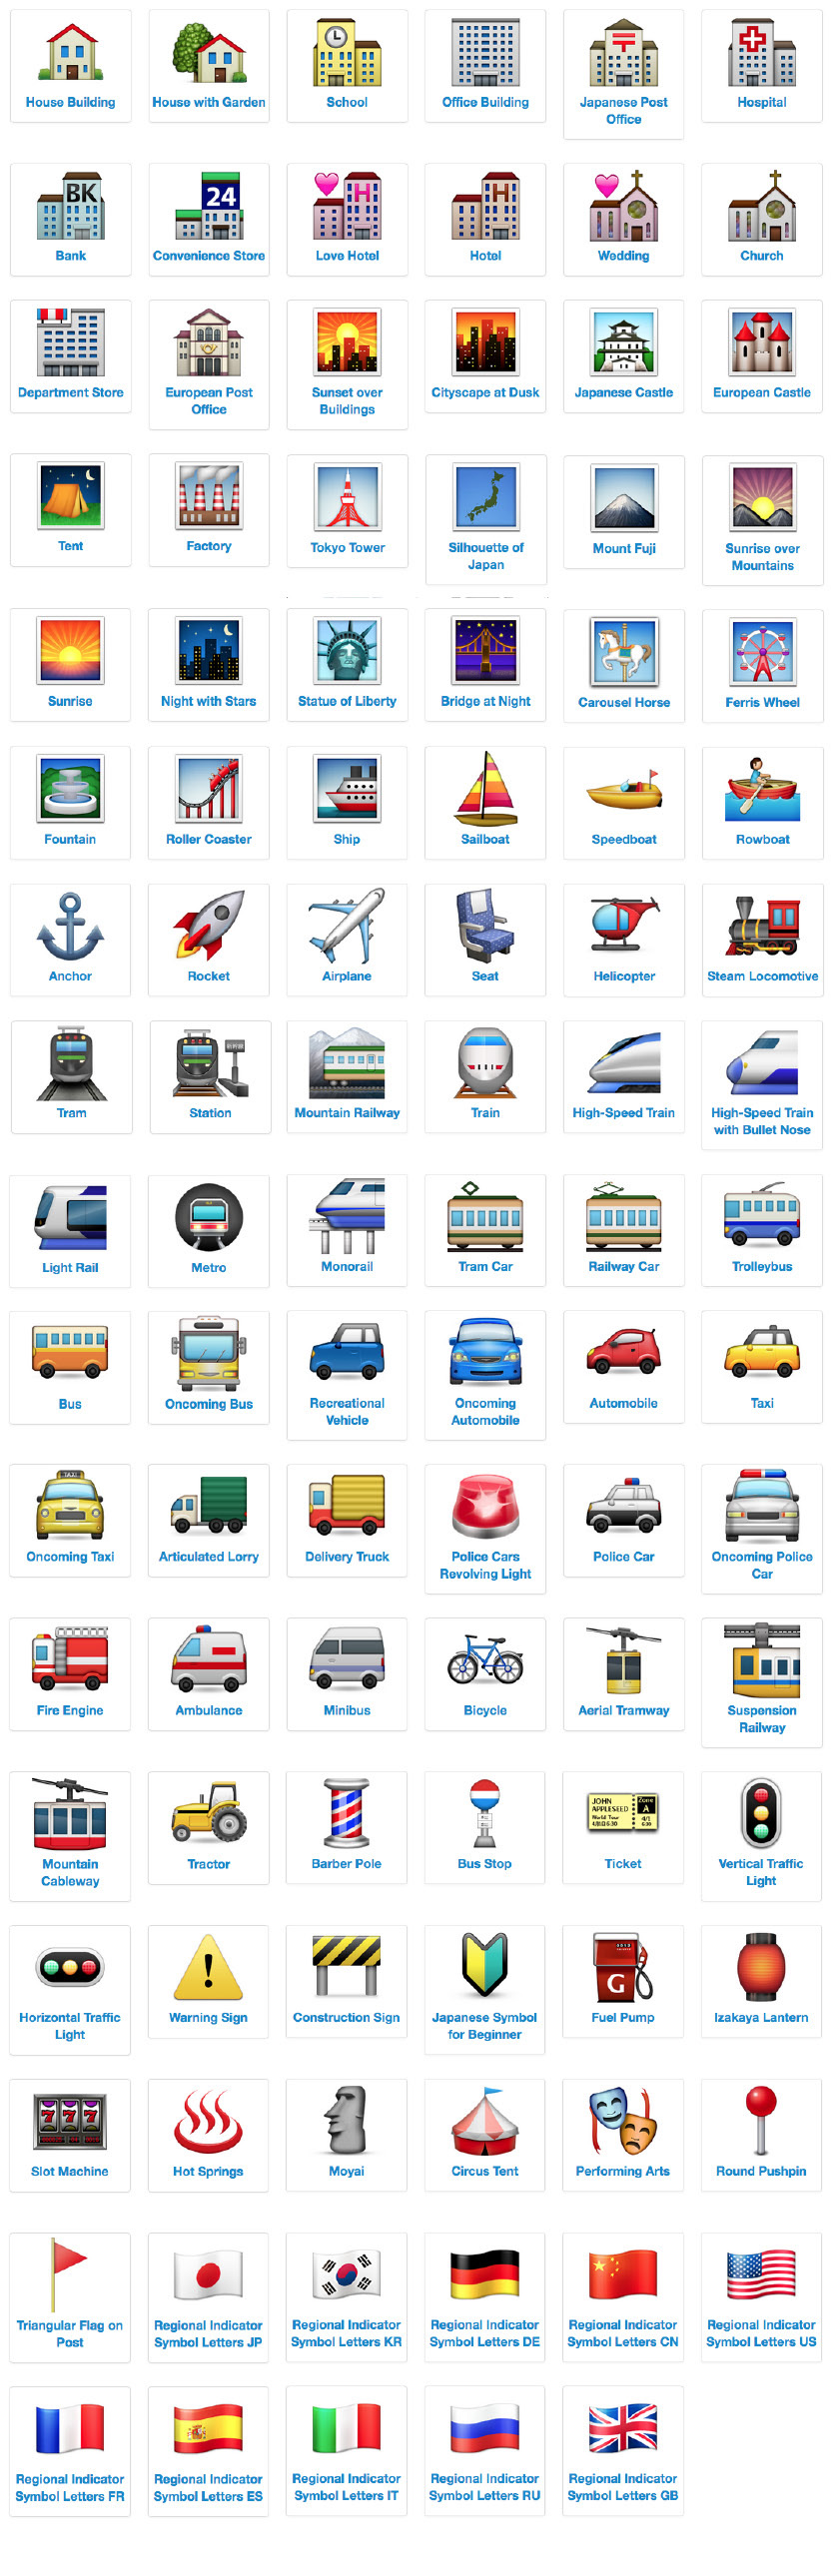 Emoji icon list symbols with meanings and definitions a bit o emoji icon list symbols with meanings and definitions a bit o this a bit o that pinterest emoji definitions and symbols biocorpaavc Choice Image